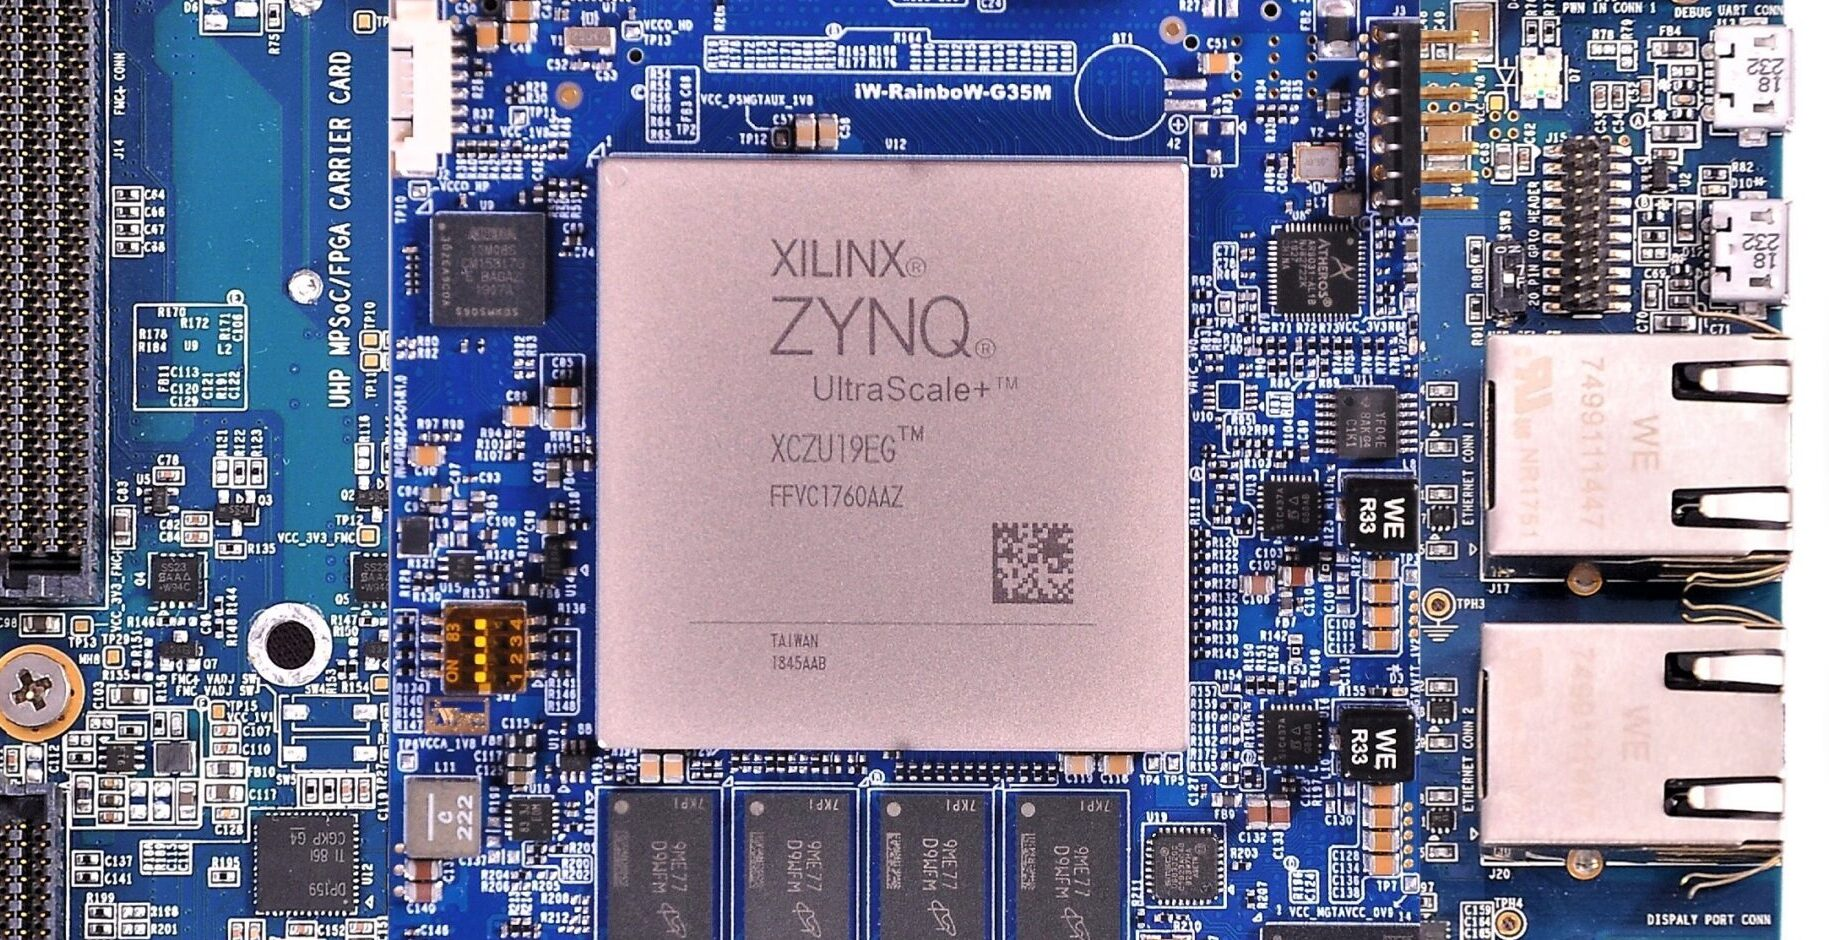 Enabling 4K Ultra HD Capabilities Through iWave's Zynq Ultrascale+ MPSoC Platform